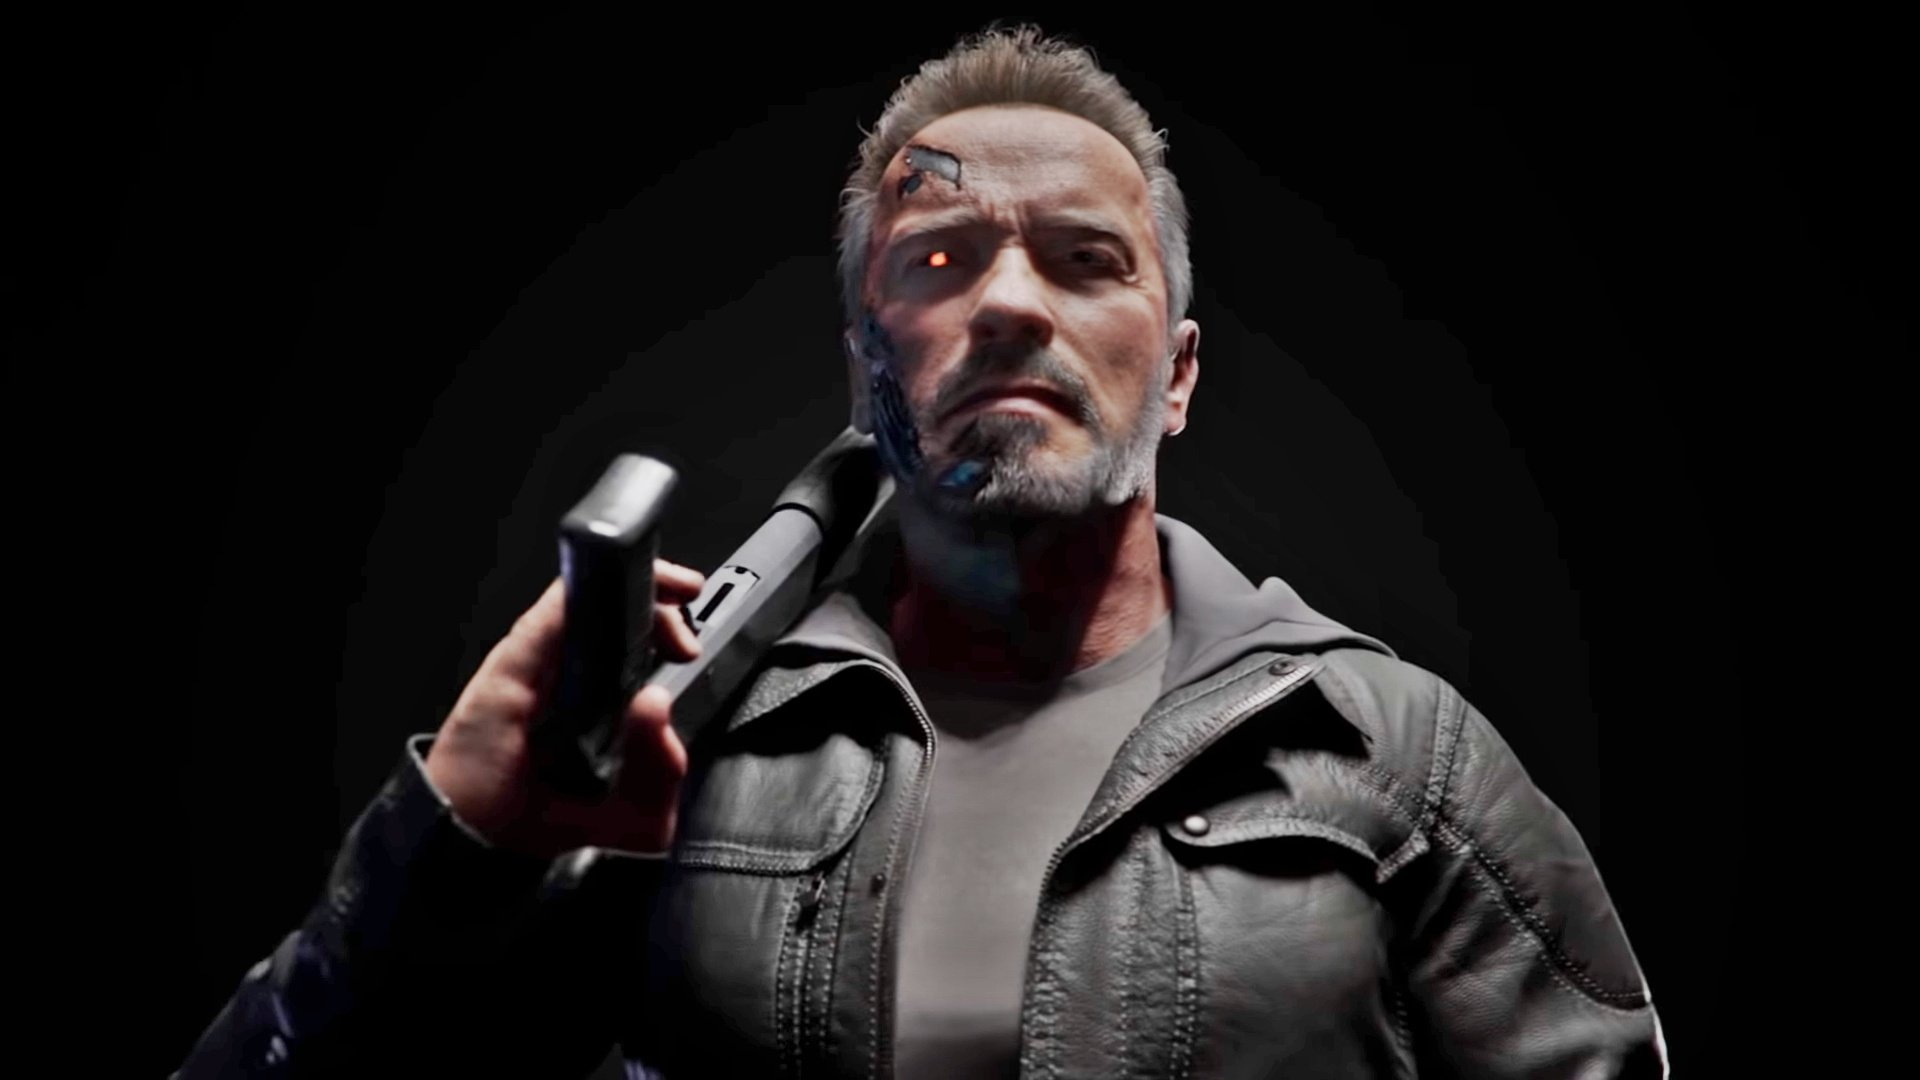 Mortal Kombat 11: Terminator Won't Have the Voice of Arnold Schwarzenegger?